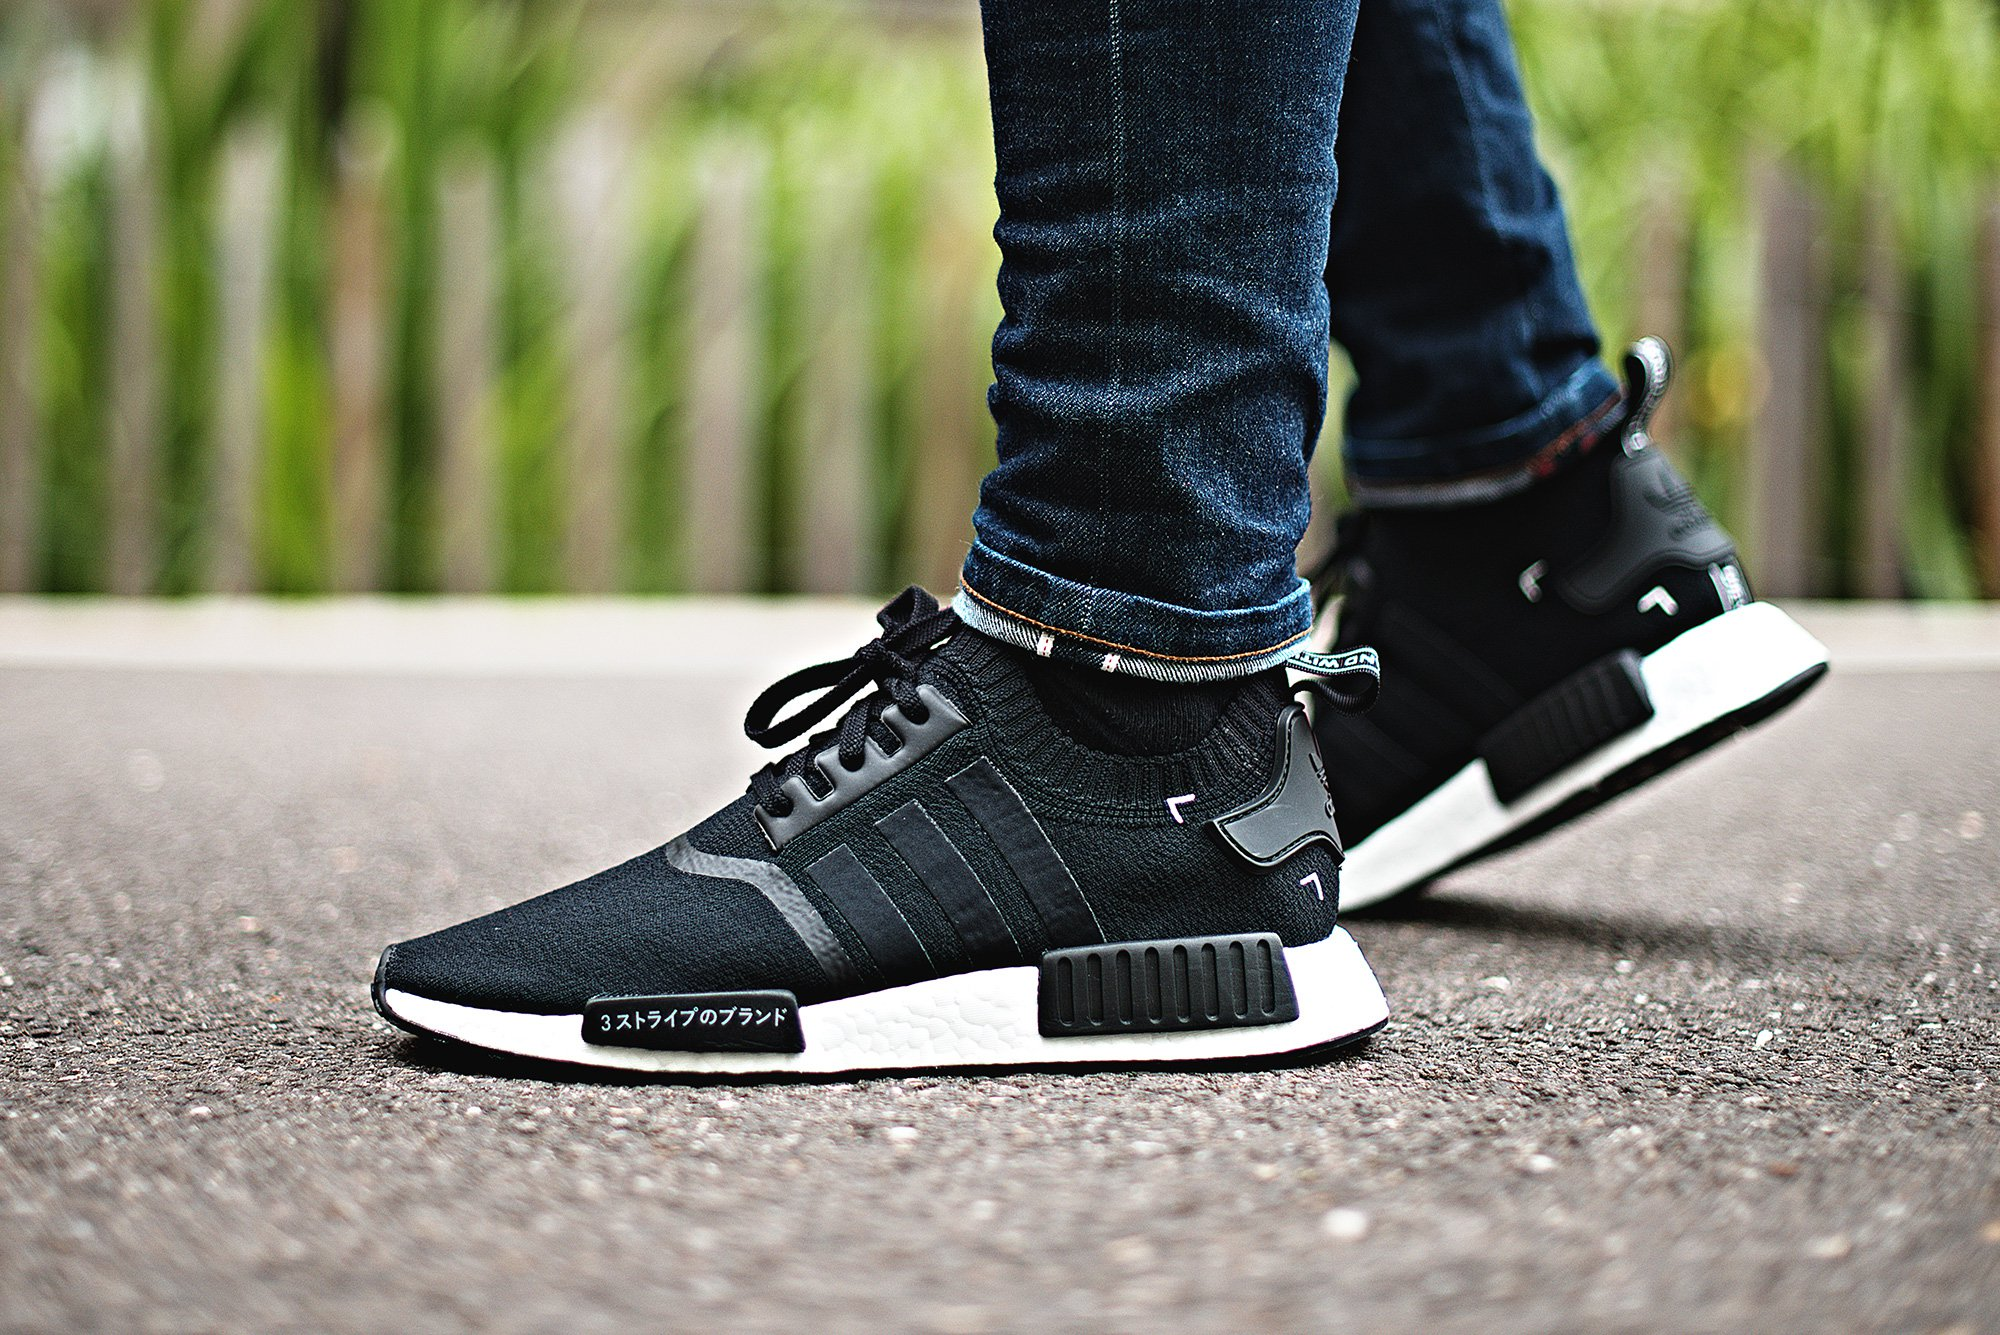 adidas nmd homme xr1